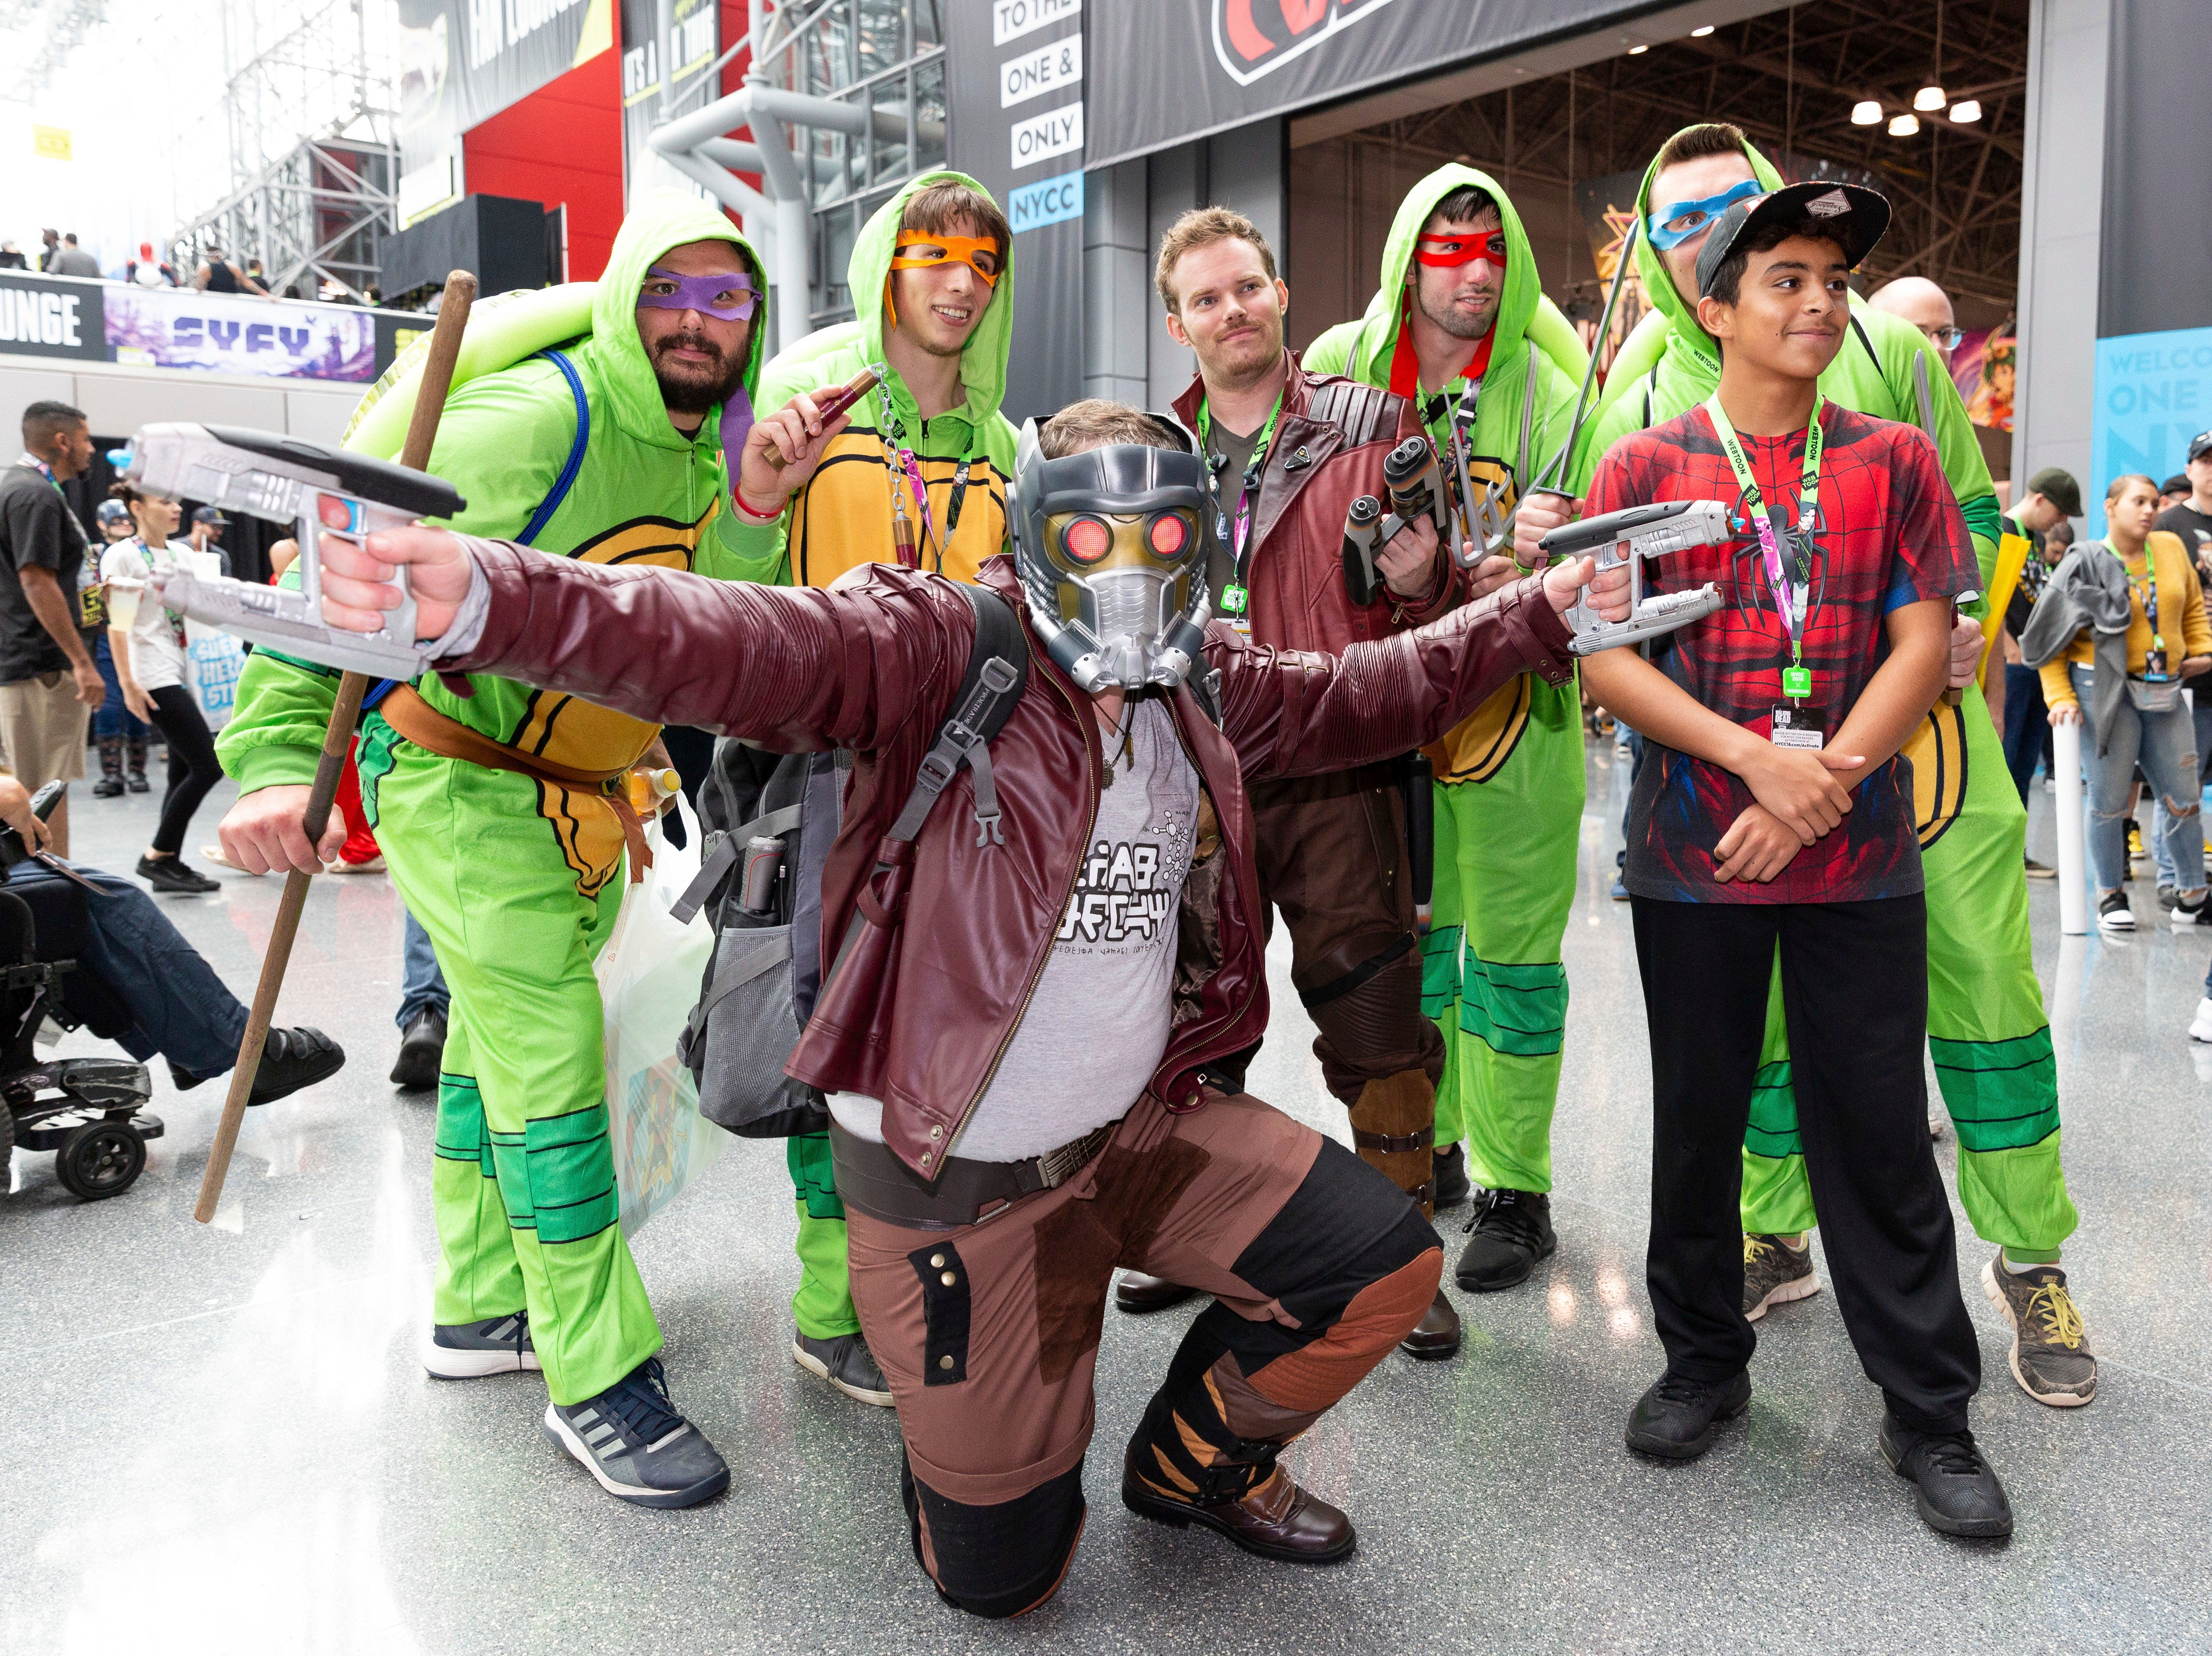 Attendees dressed in costume pose for a photo with a fan during the first day of New York Comic Con, Thursday, Oct. 4, 2018. (AP Photo/Steve Luciano)